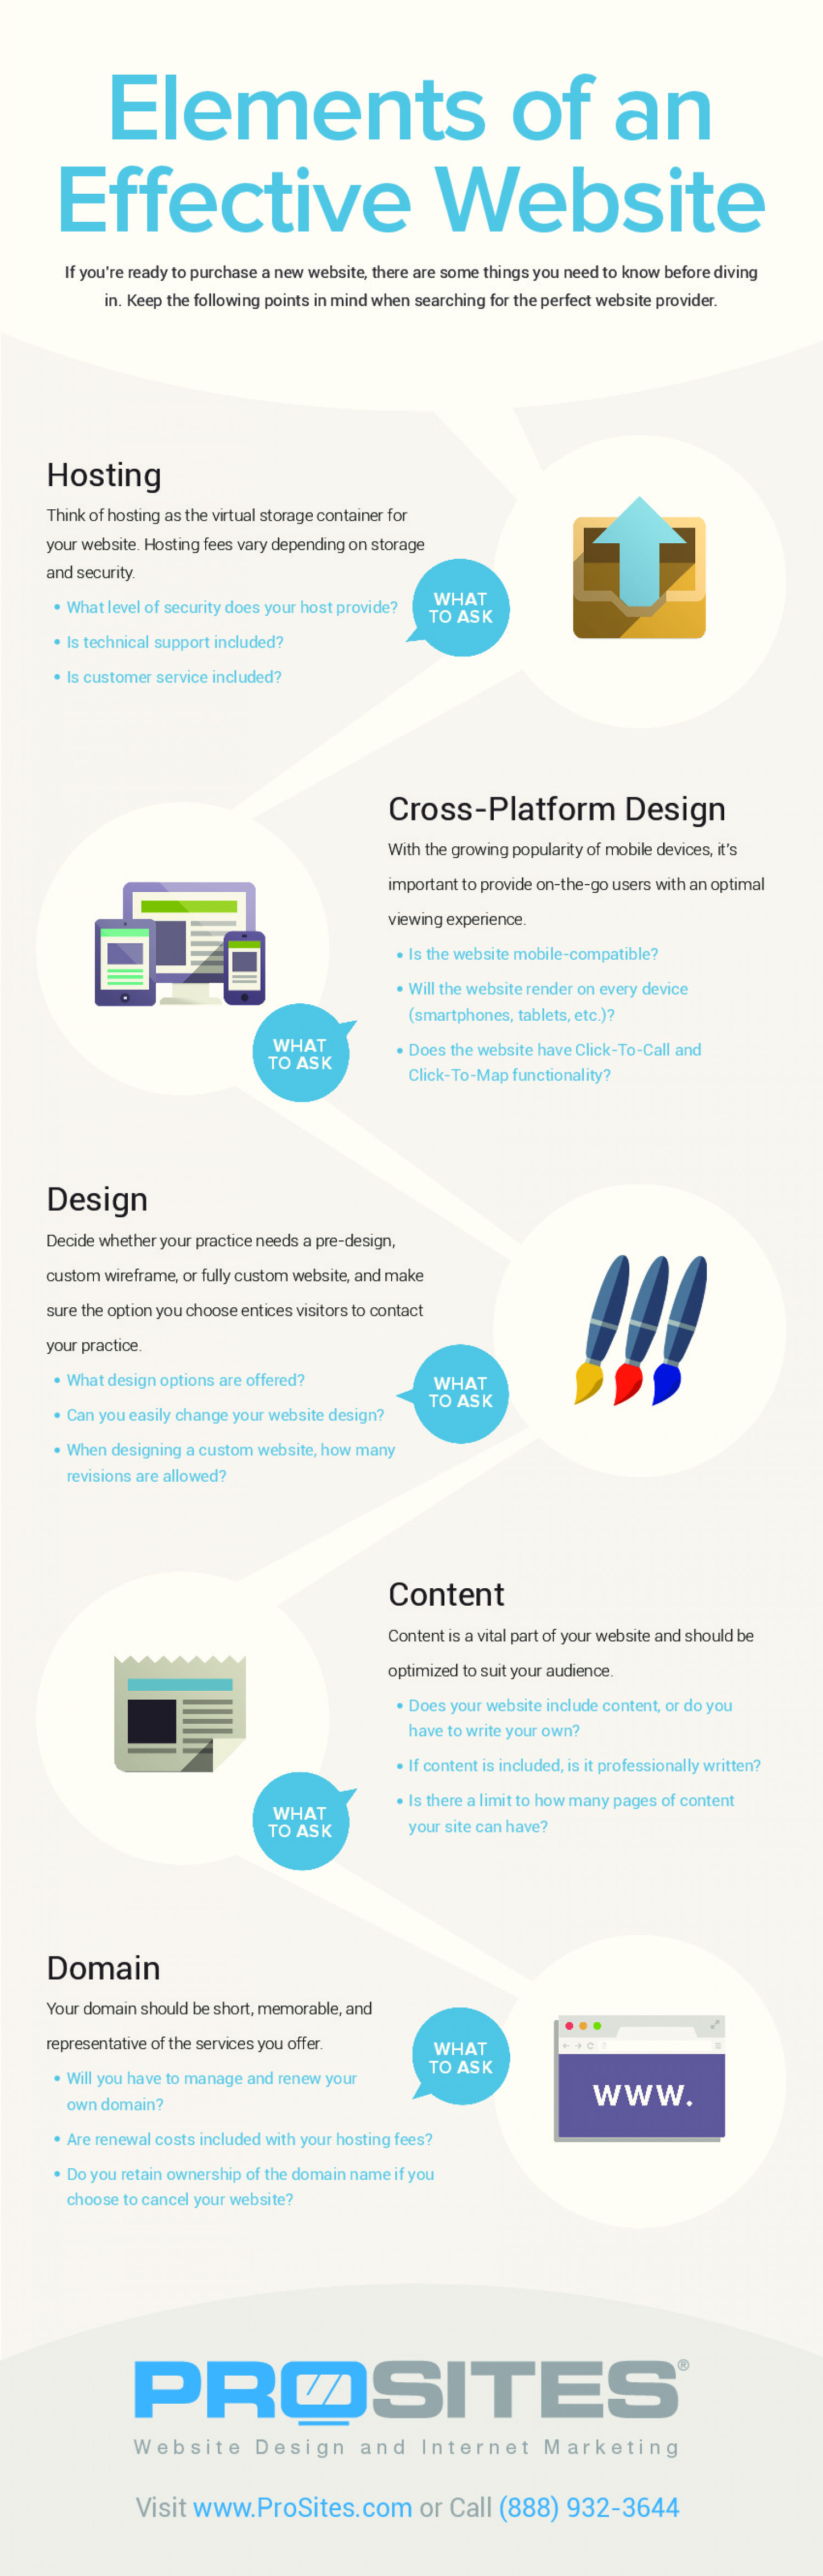 Elements of an Effective Website Infographic